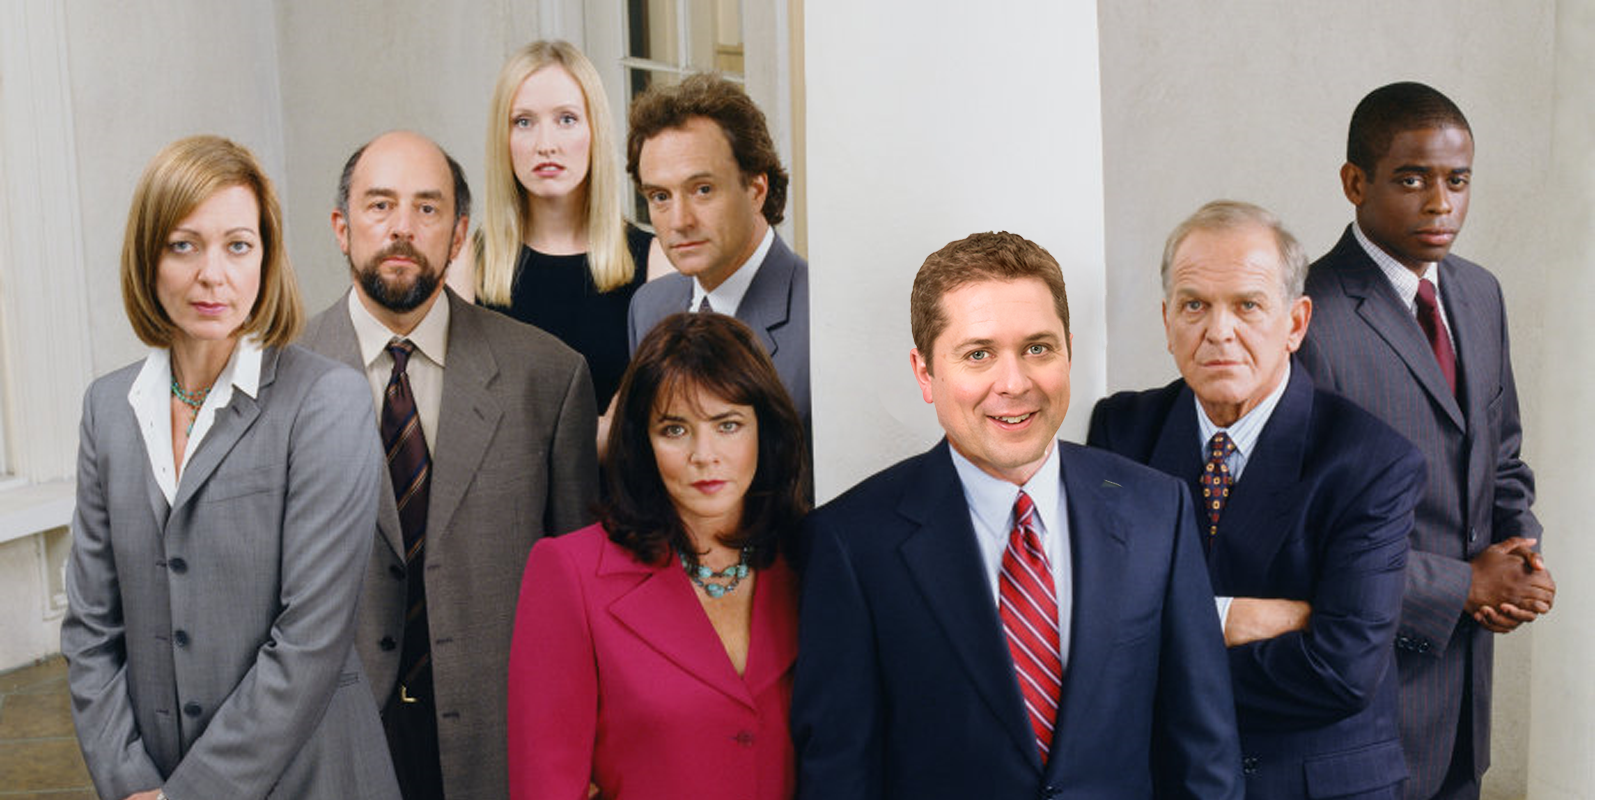 What conservatives can learn from The West Wing